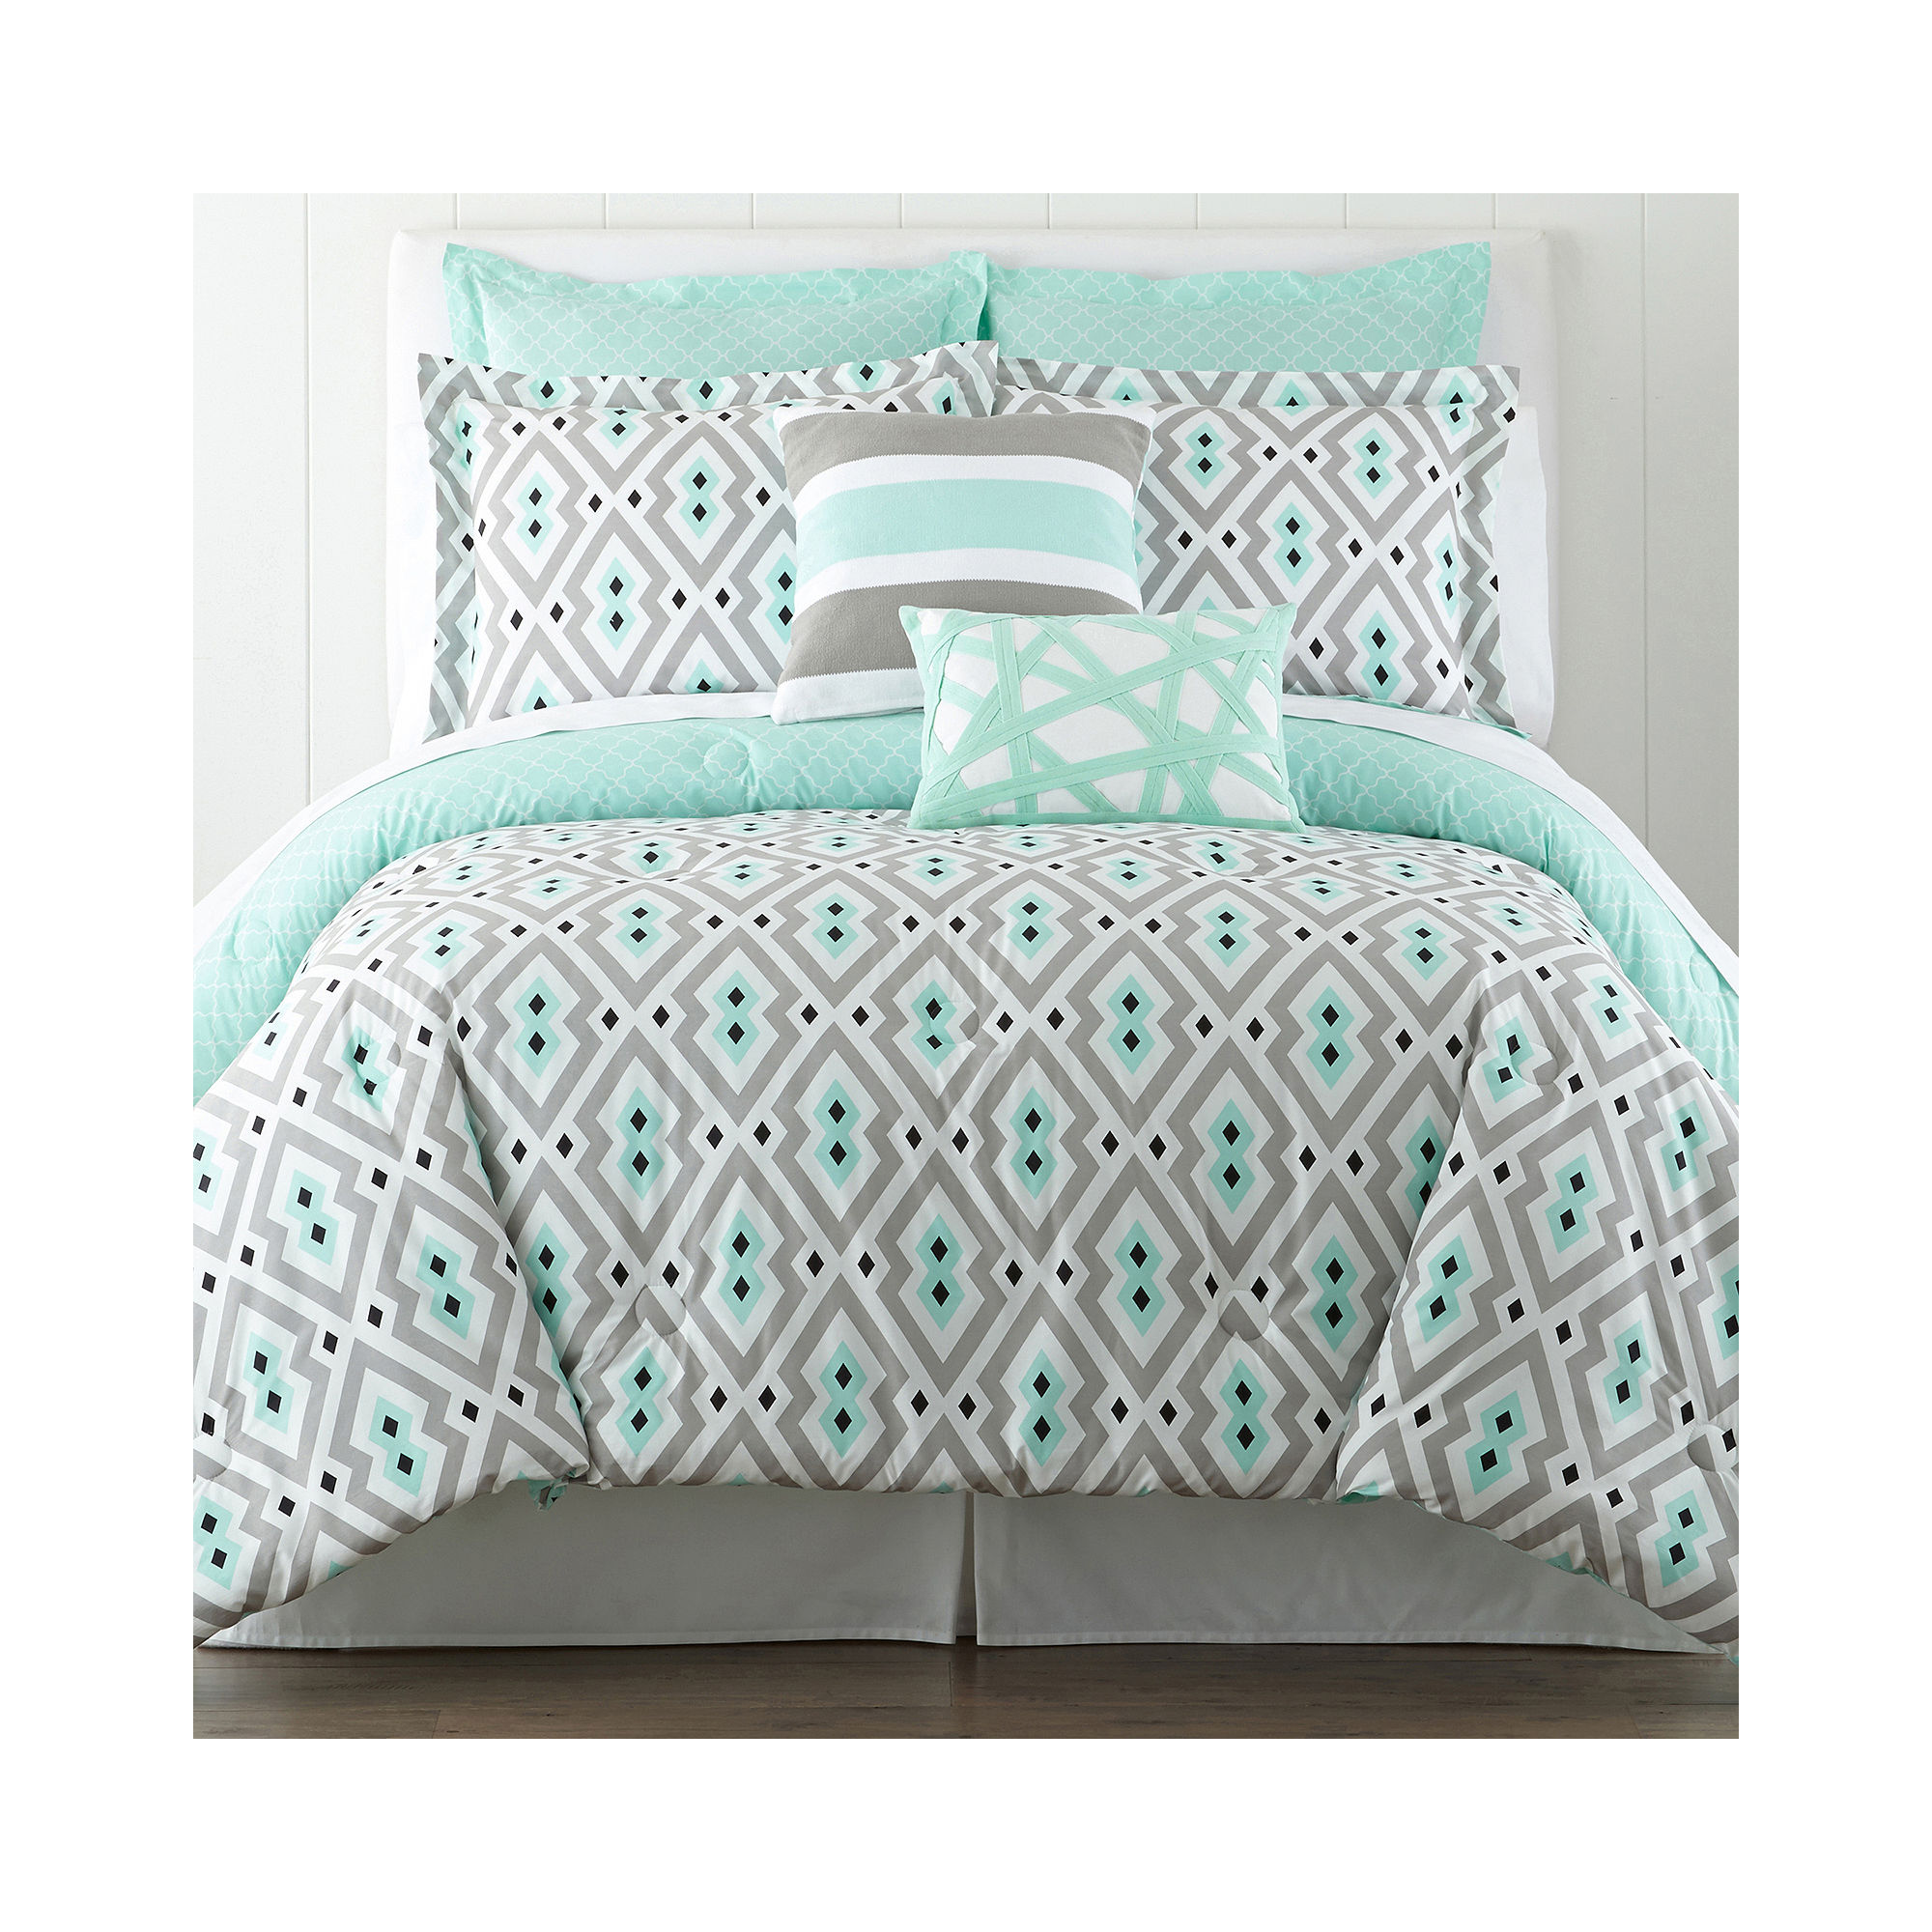 buy happy chic by jonathan adler nina 3 pc reversible comforter set now bedding sets store. Black Bedroom Furniture Sets. Home Design Ideas